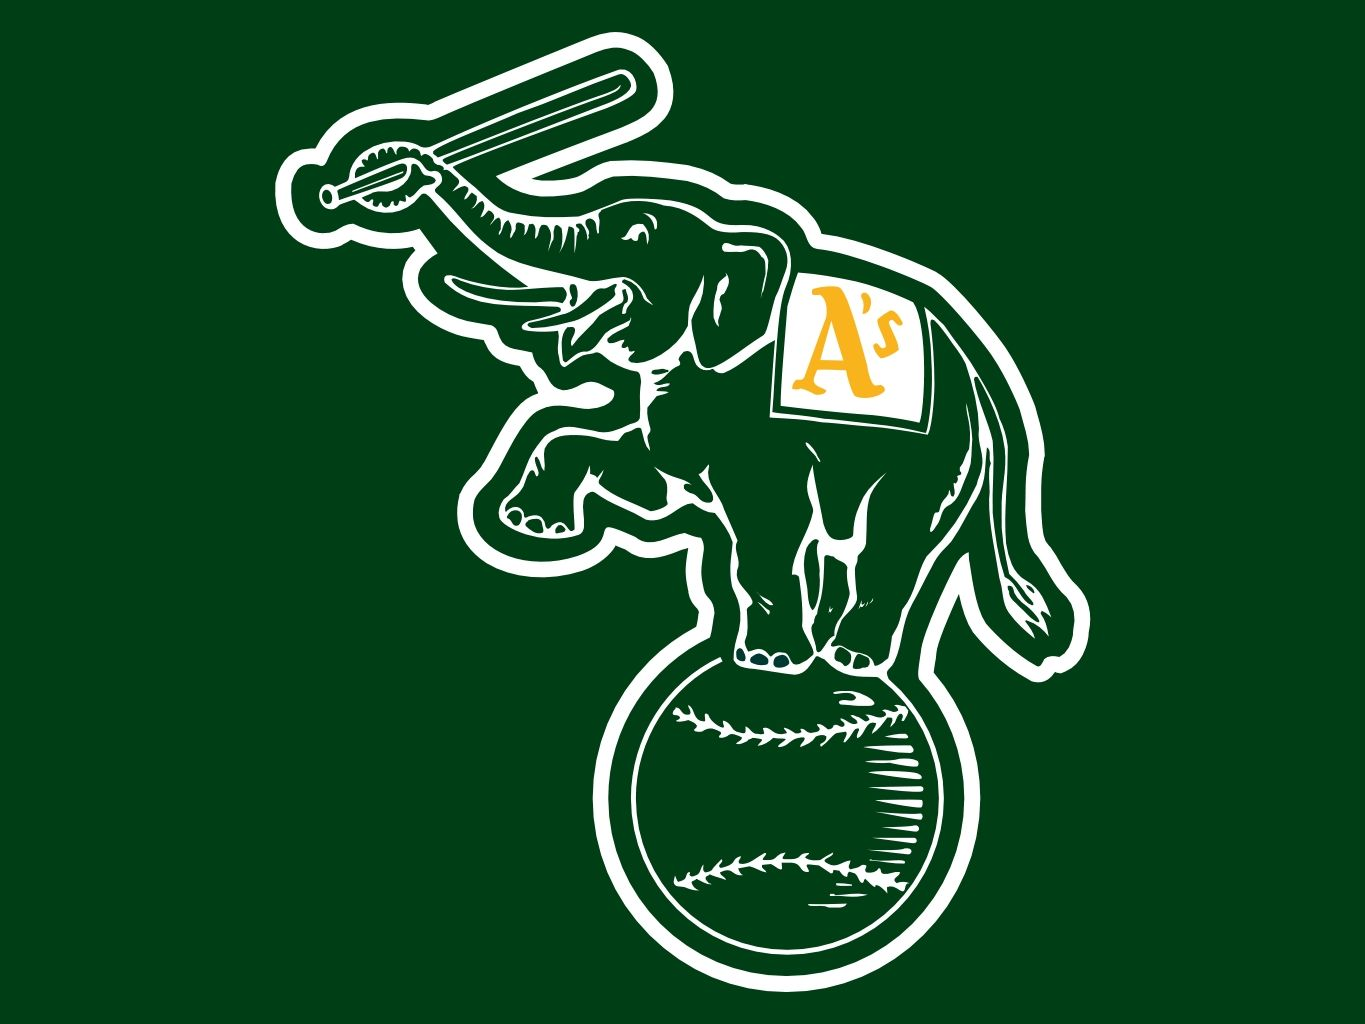 She oakland athletics the swinging as team banner looks